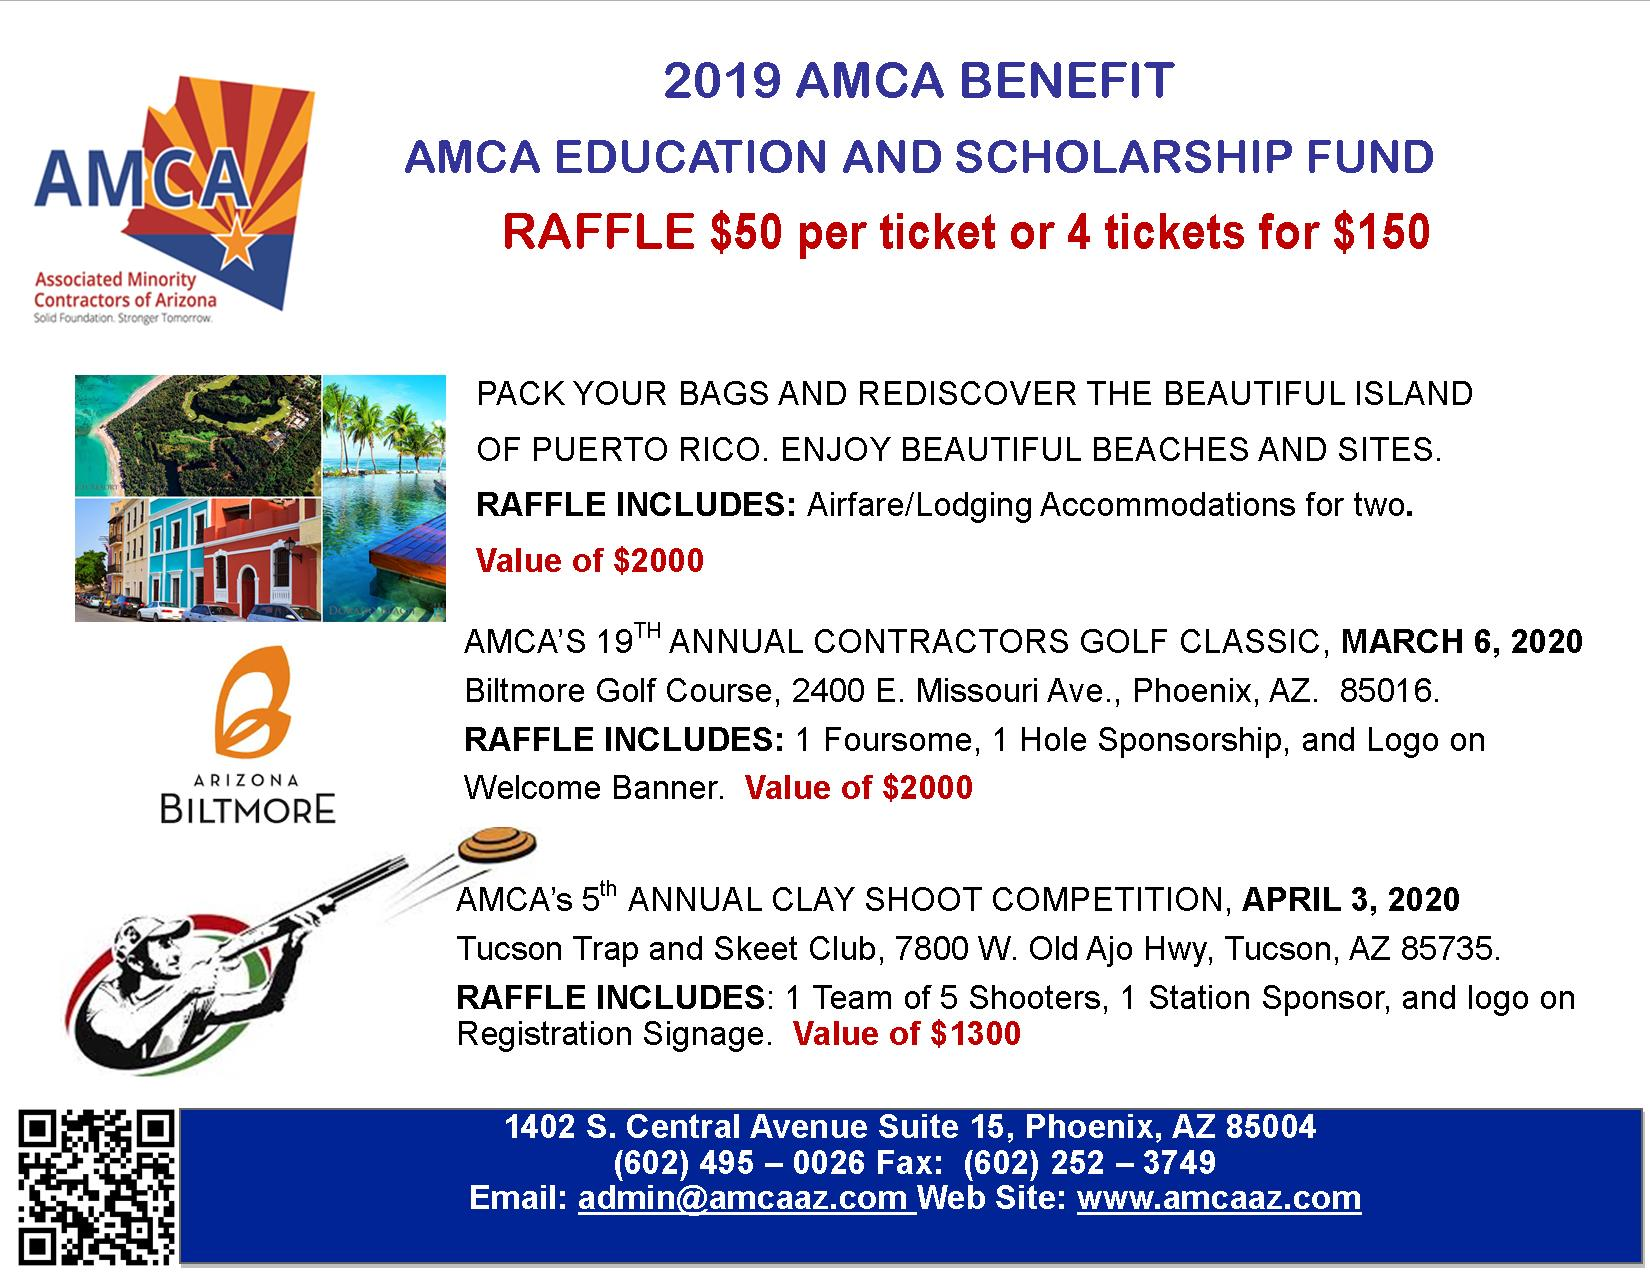 AMCA Education and Scholarship Fund Raffle Promotion